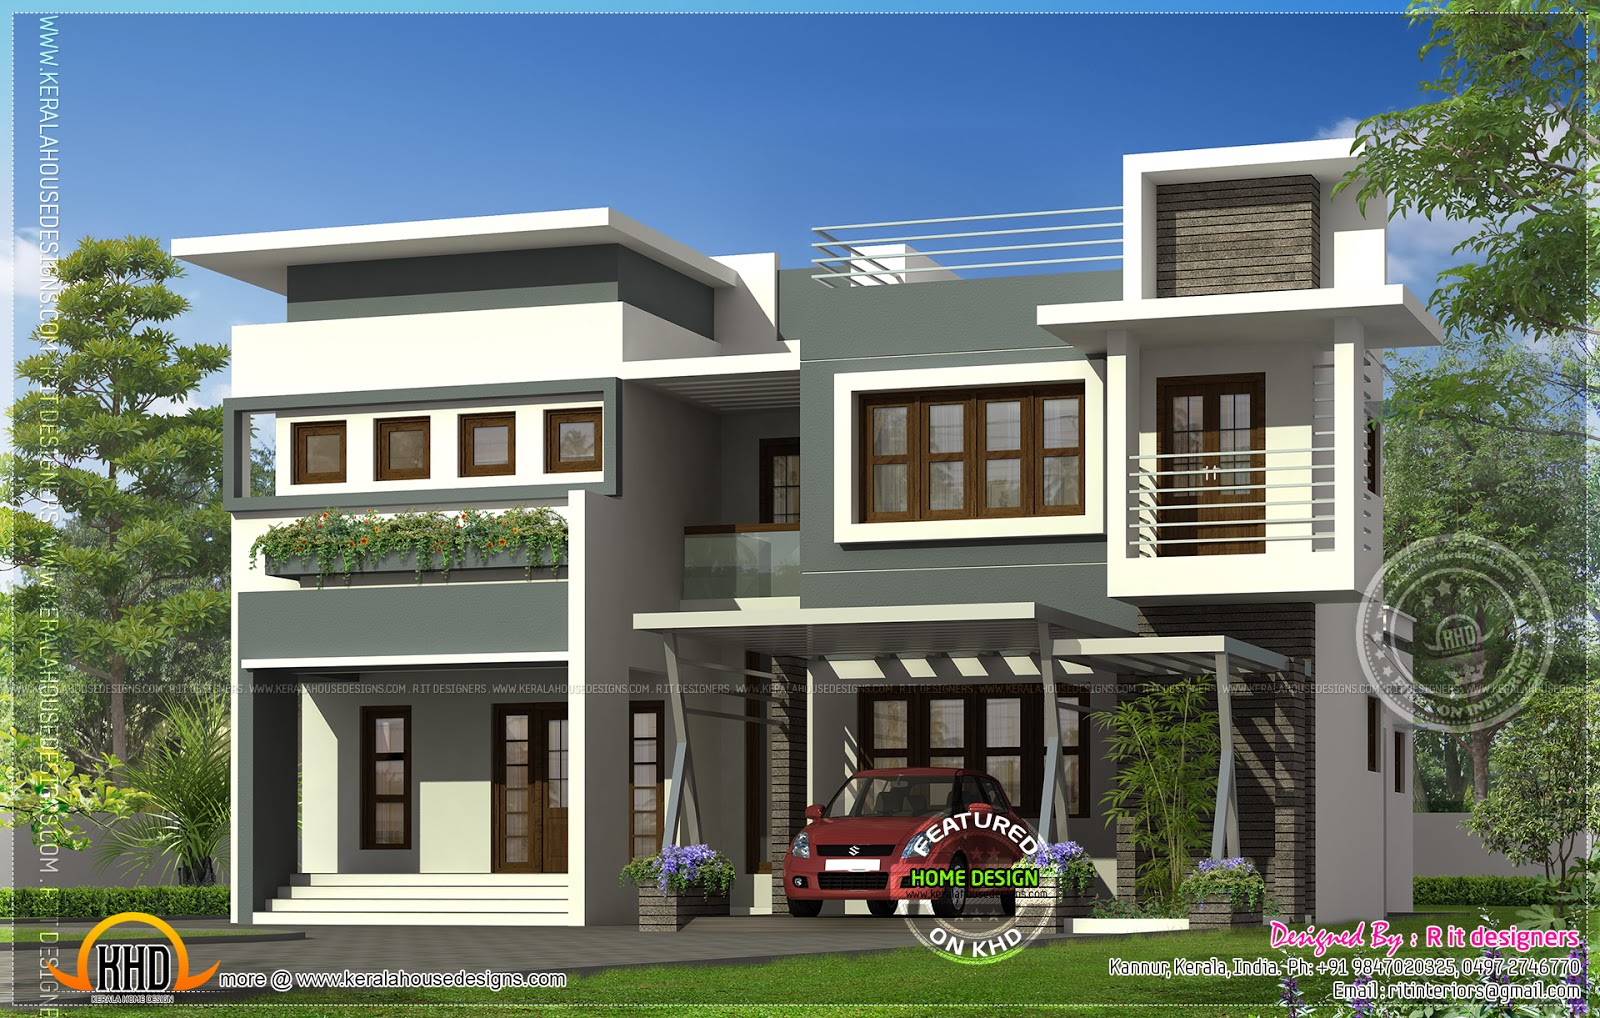 Modern contemporary residence design kerala home design and floor plans - New house design ...